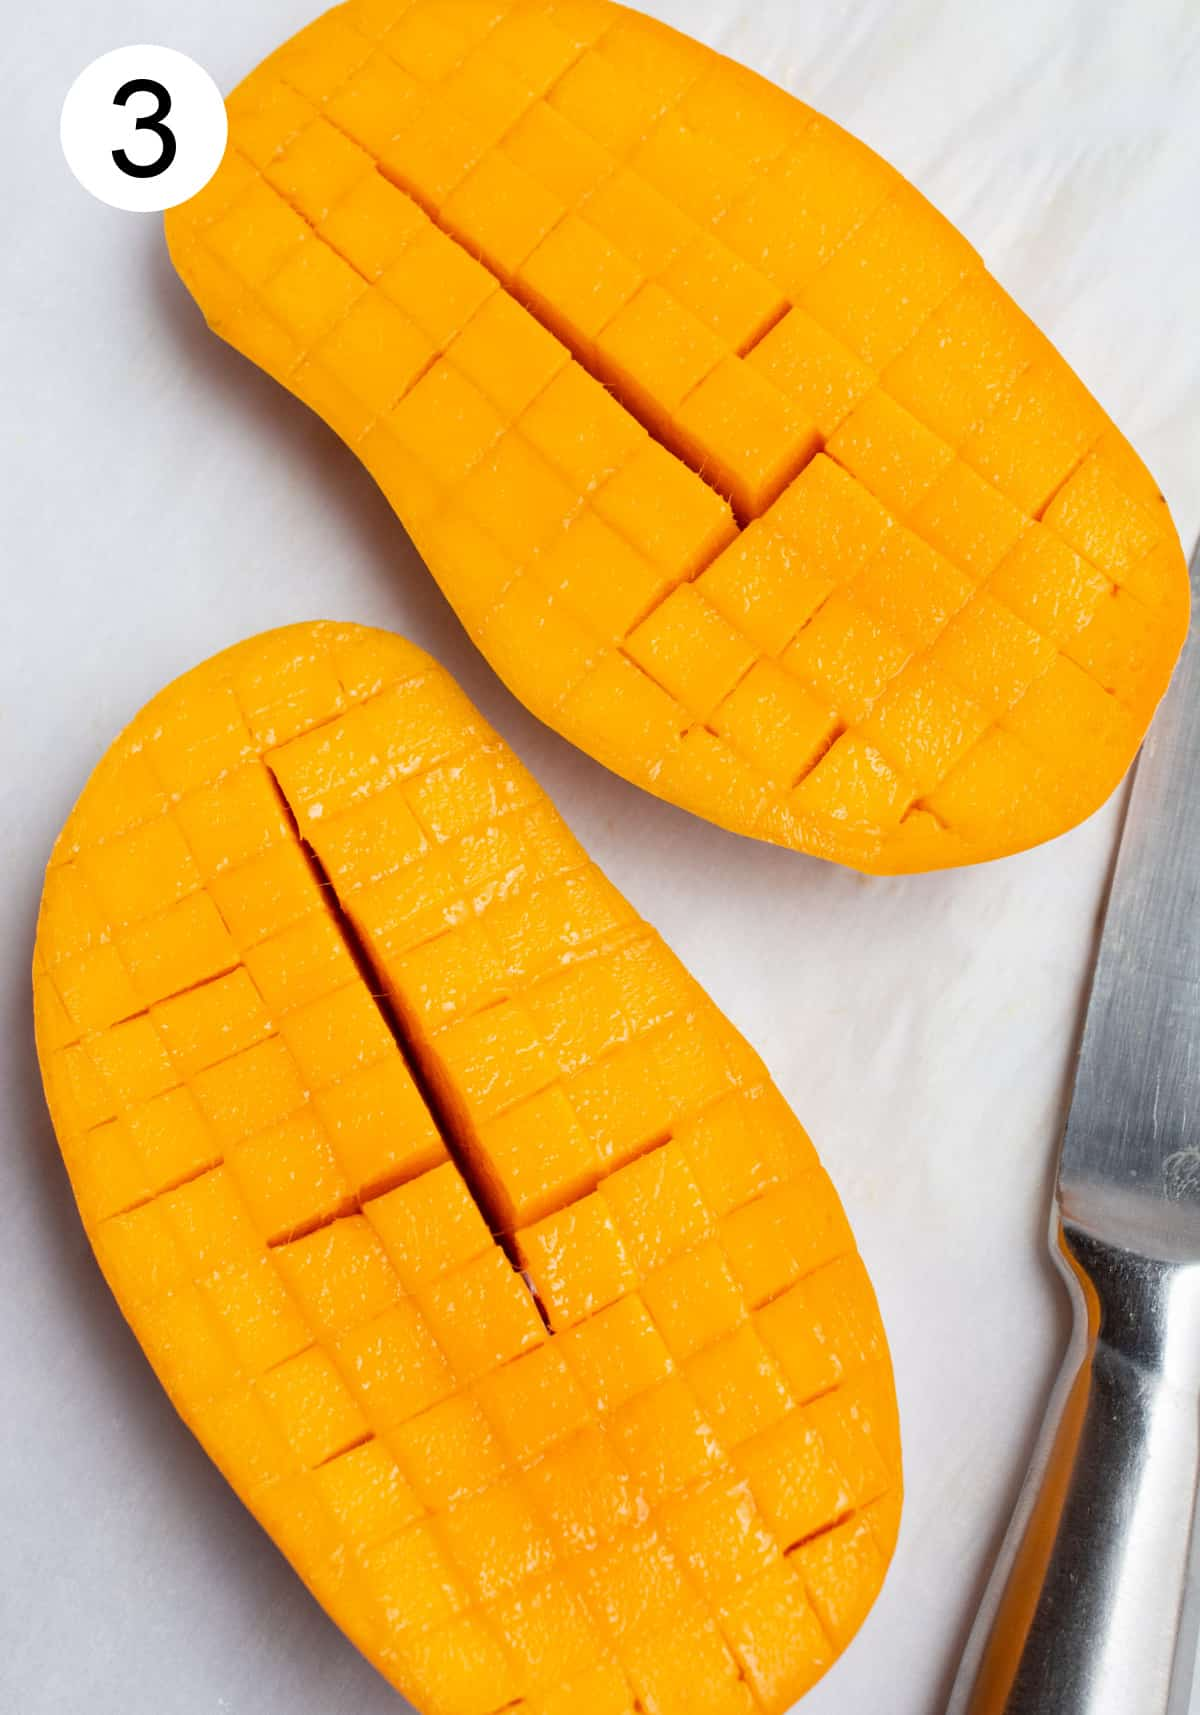 Two mango halves sliced into cubes in their skin.